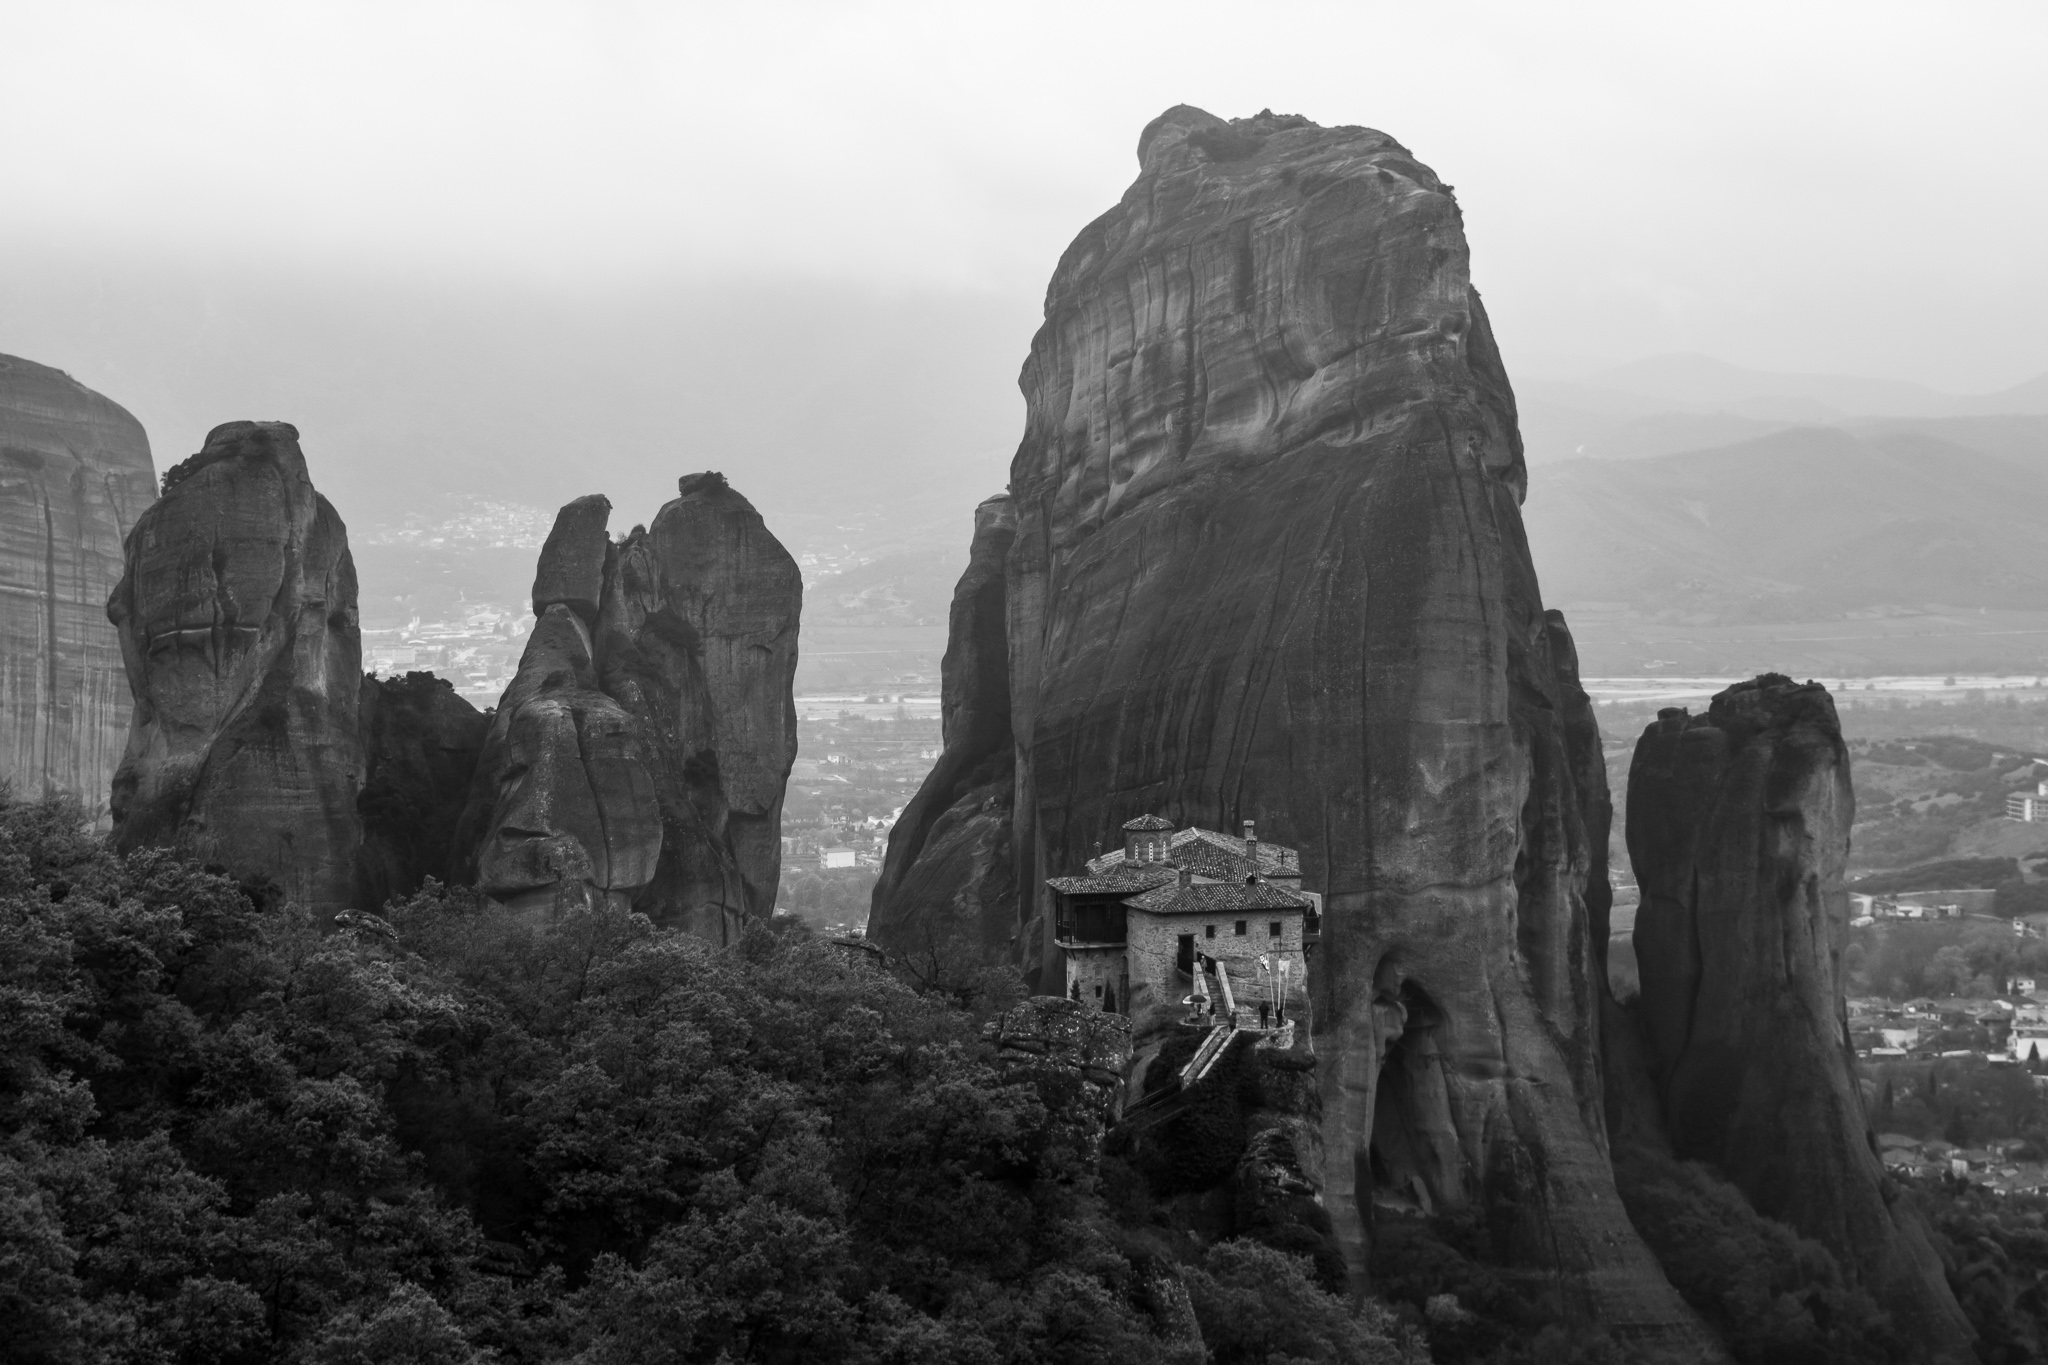 "The Meteora Monasteries or Meteors are located in the Thessaly Plain, near the town of Kalambaka, ""suspended in the sky"" over sandstone cliffs. <br>Founded by the hermit Athanasios, classified in 1988 as a World Heritage Site, this group of twenty-four monastic centers, dating from the 14th century, contemplates the passage of time from its heavenly height."